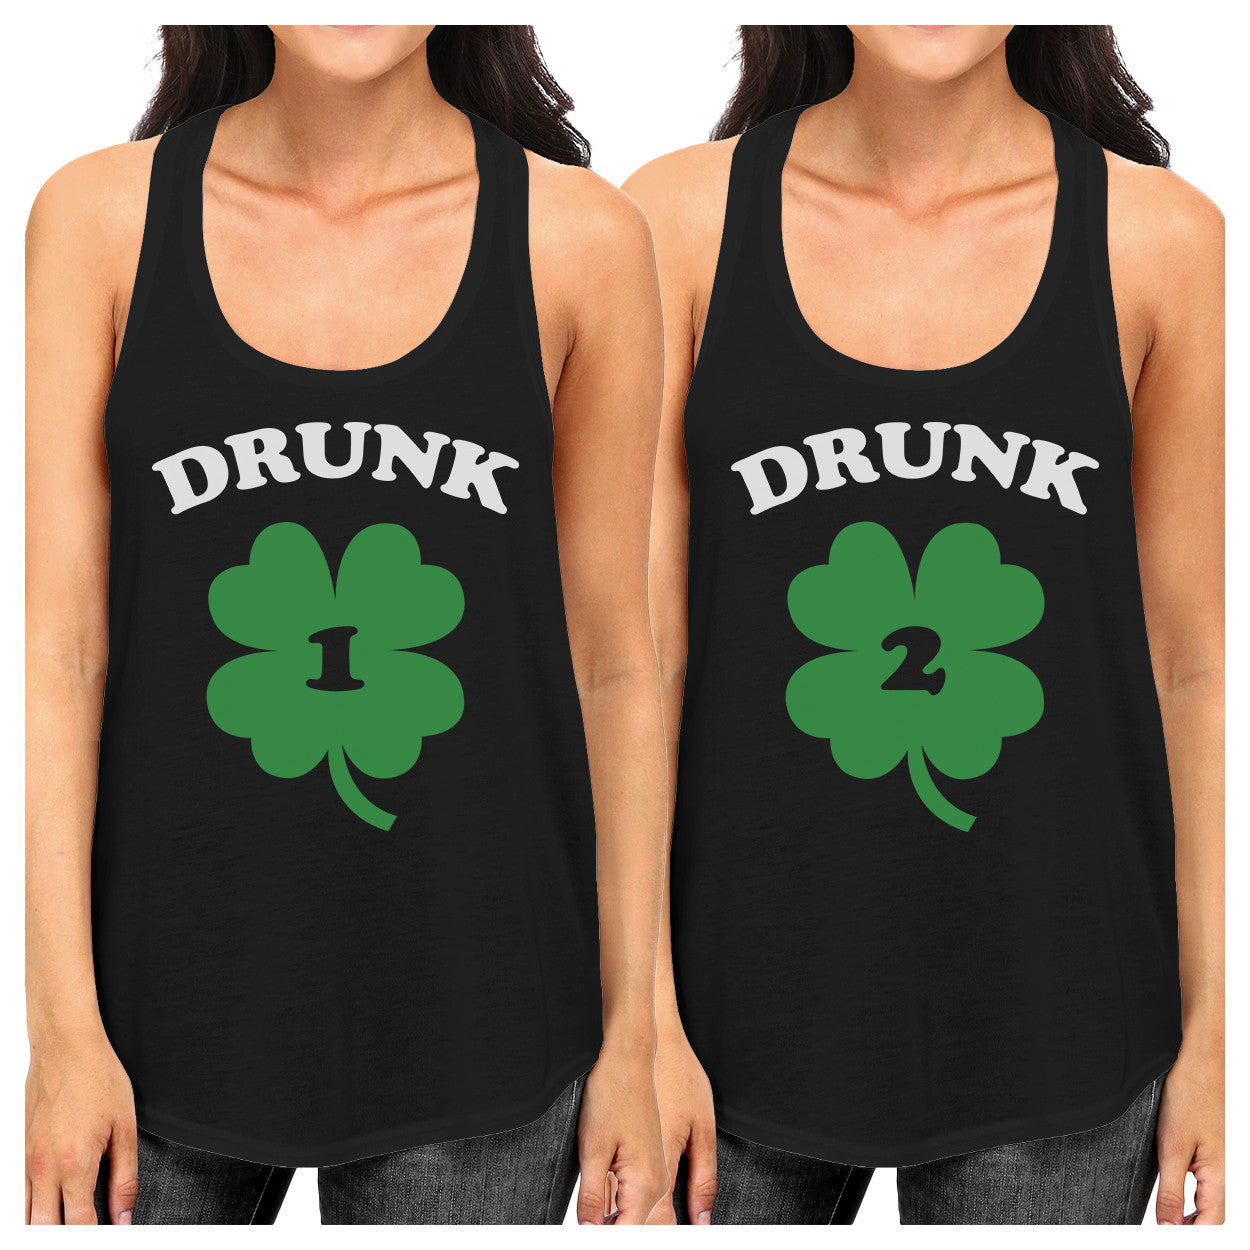 f3a5d2743 Drunk1 Drunk2 Funny Best Friend Matching Tanks For St Patricks Day -  365INLOVE